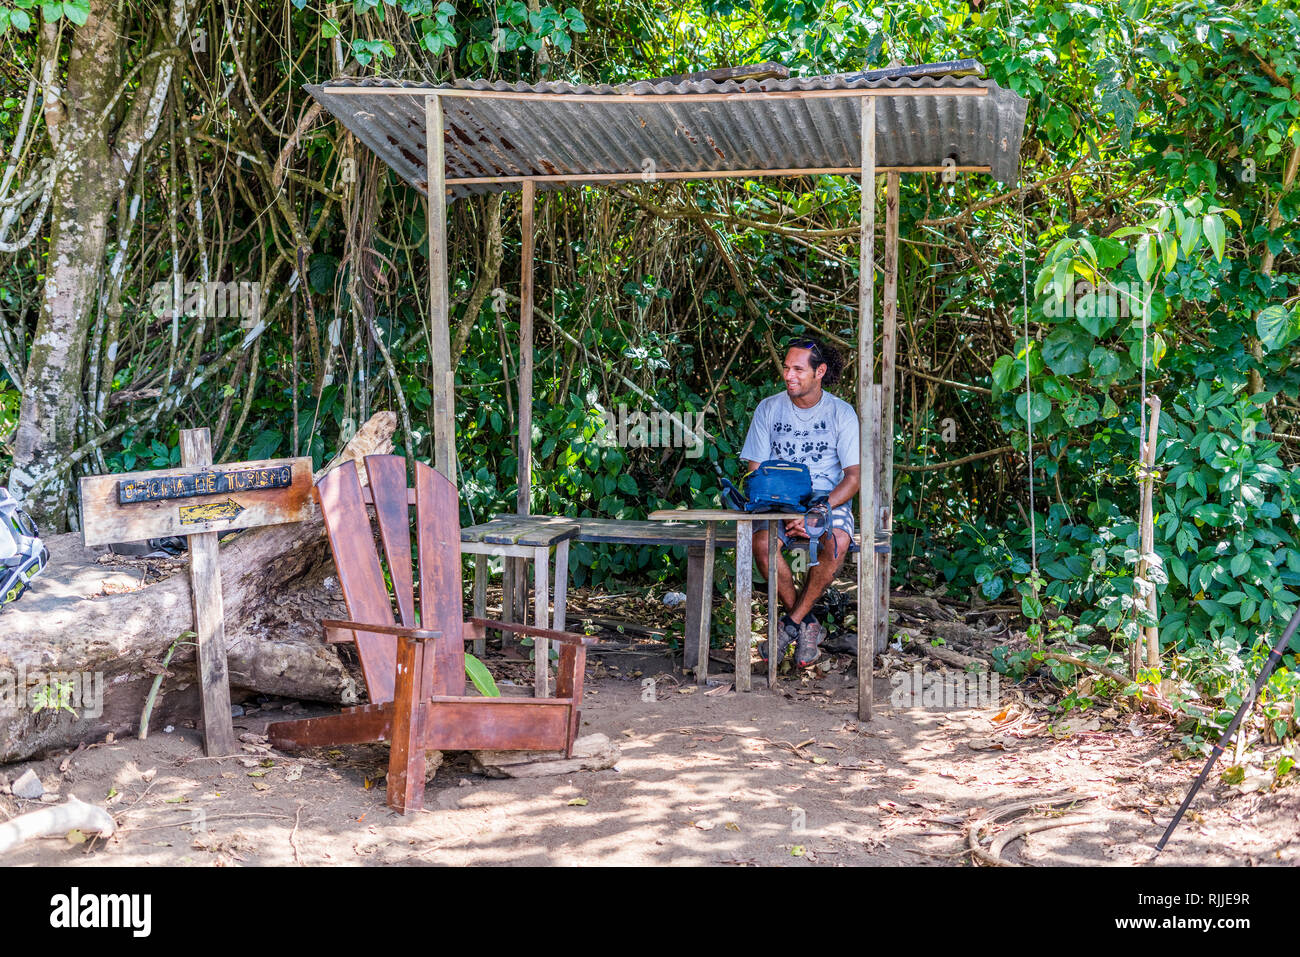 A photo of a man sitting in the modest office of tourism at the entrance to the beautiful and unique Corcovado National Park in Costa Rica - Stock Image